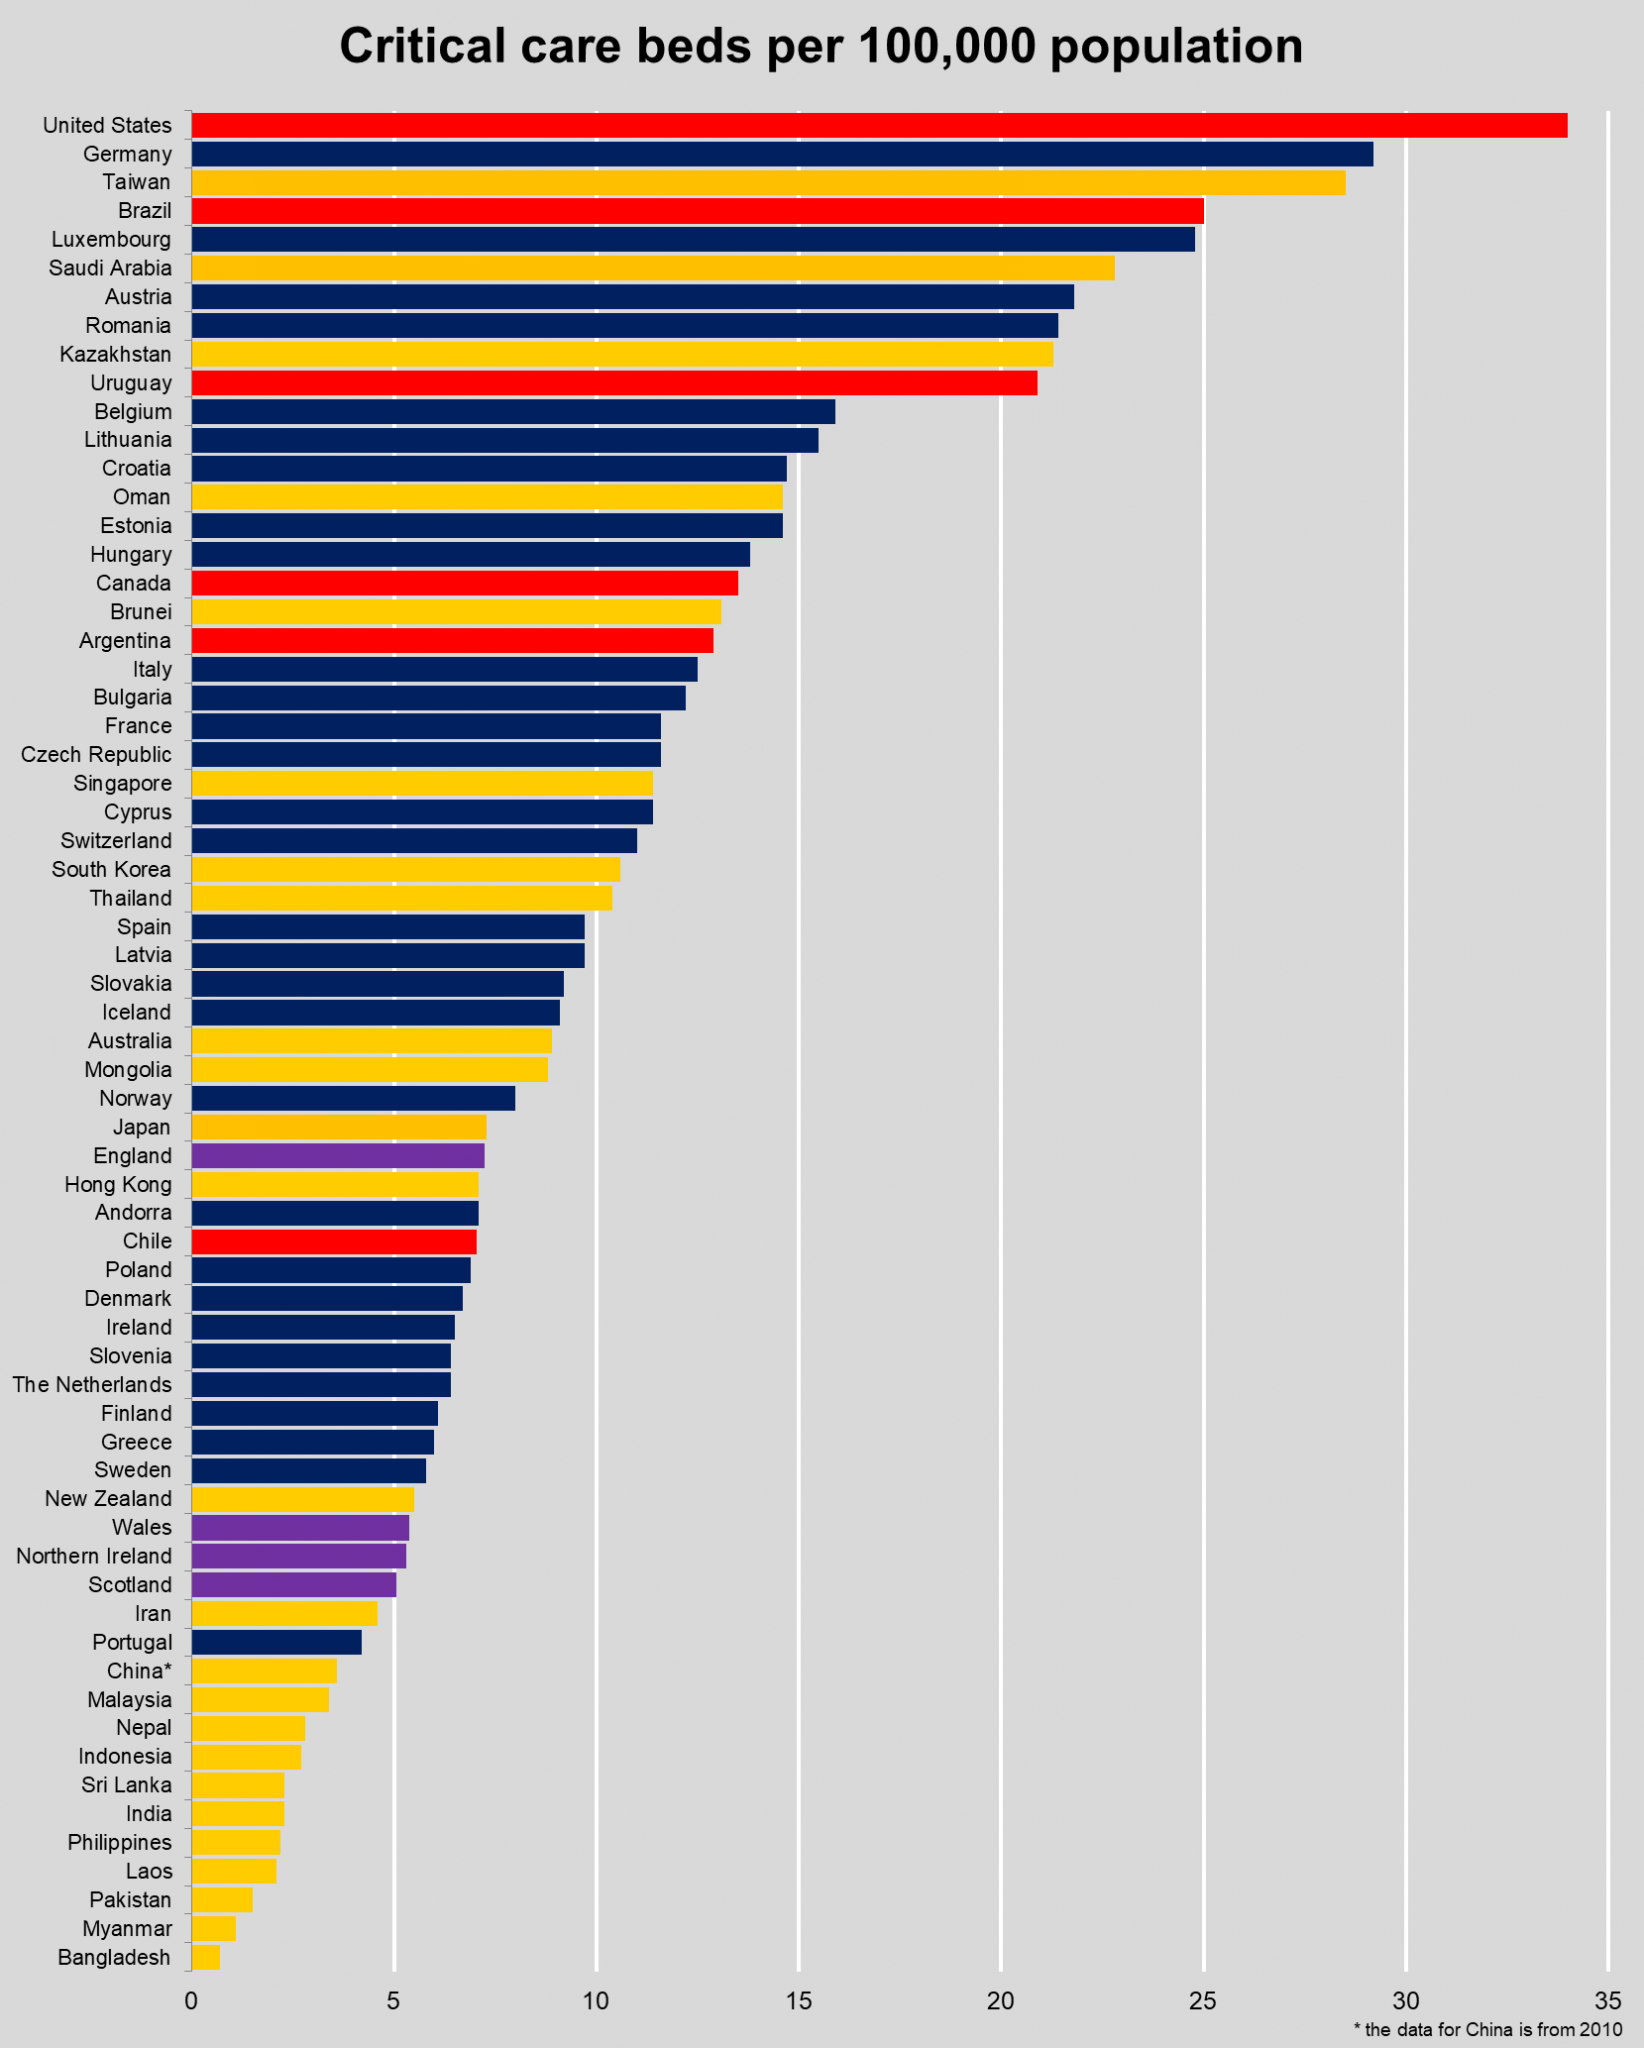 ICU-beds-by-country-4-1644x2048.png